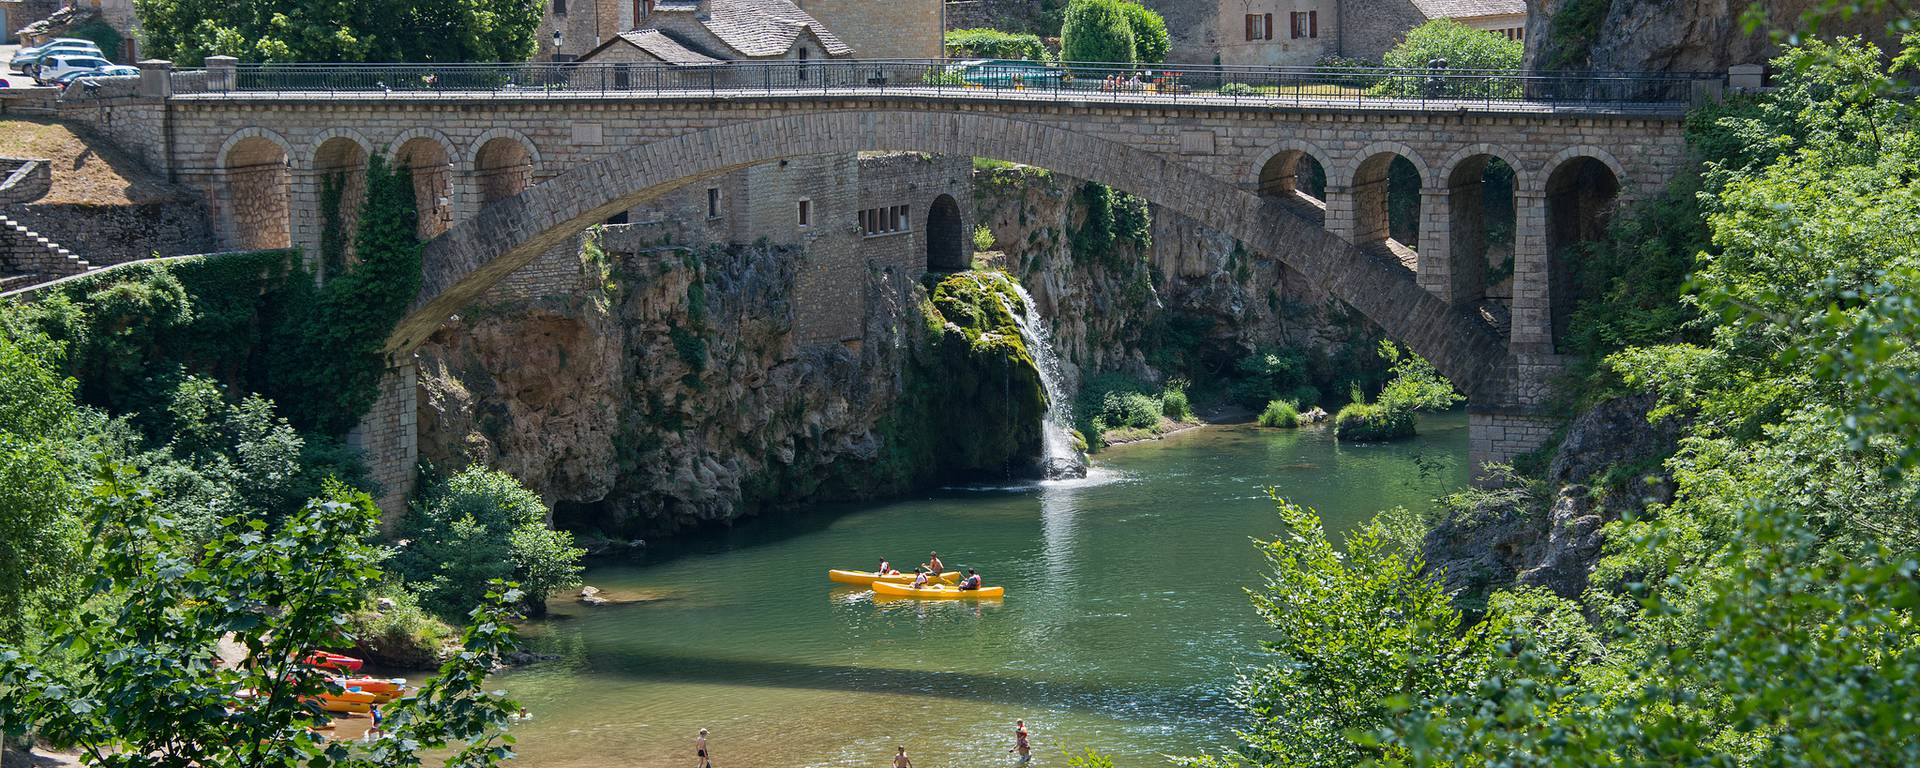 Saint-Chély du Tarn bridge in Lozère